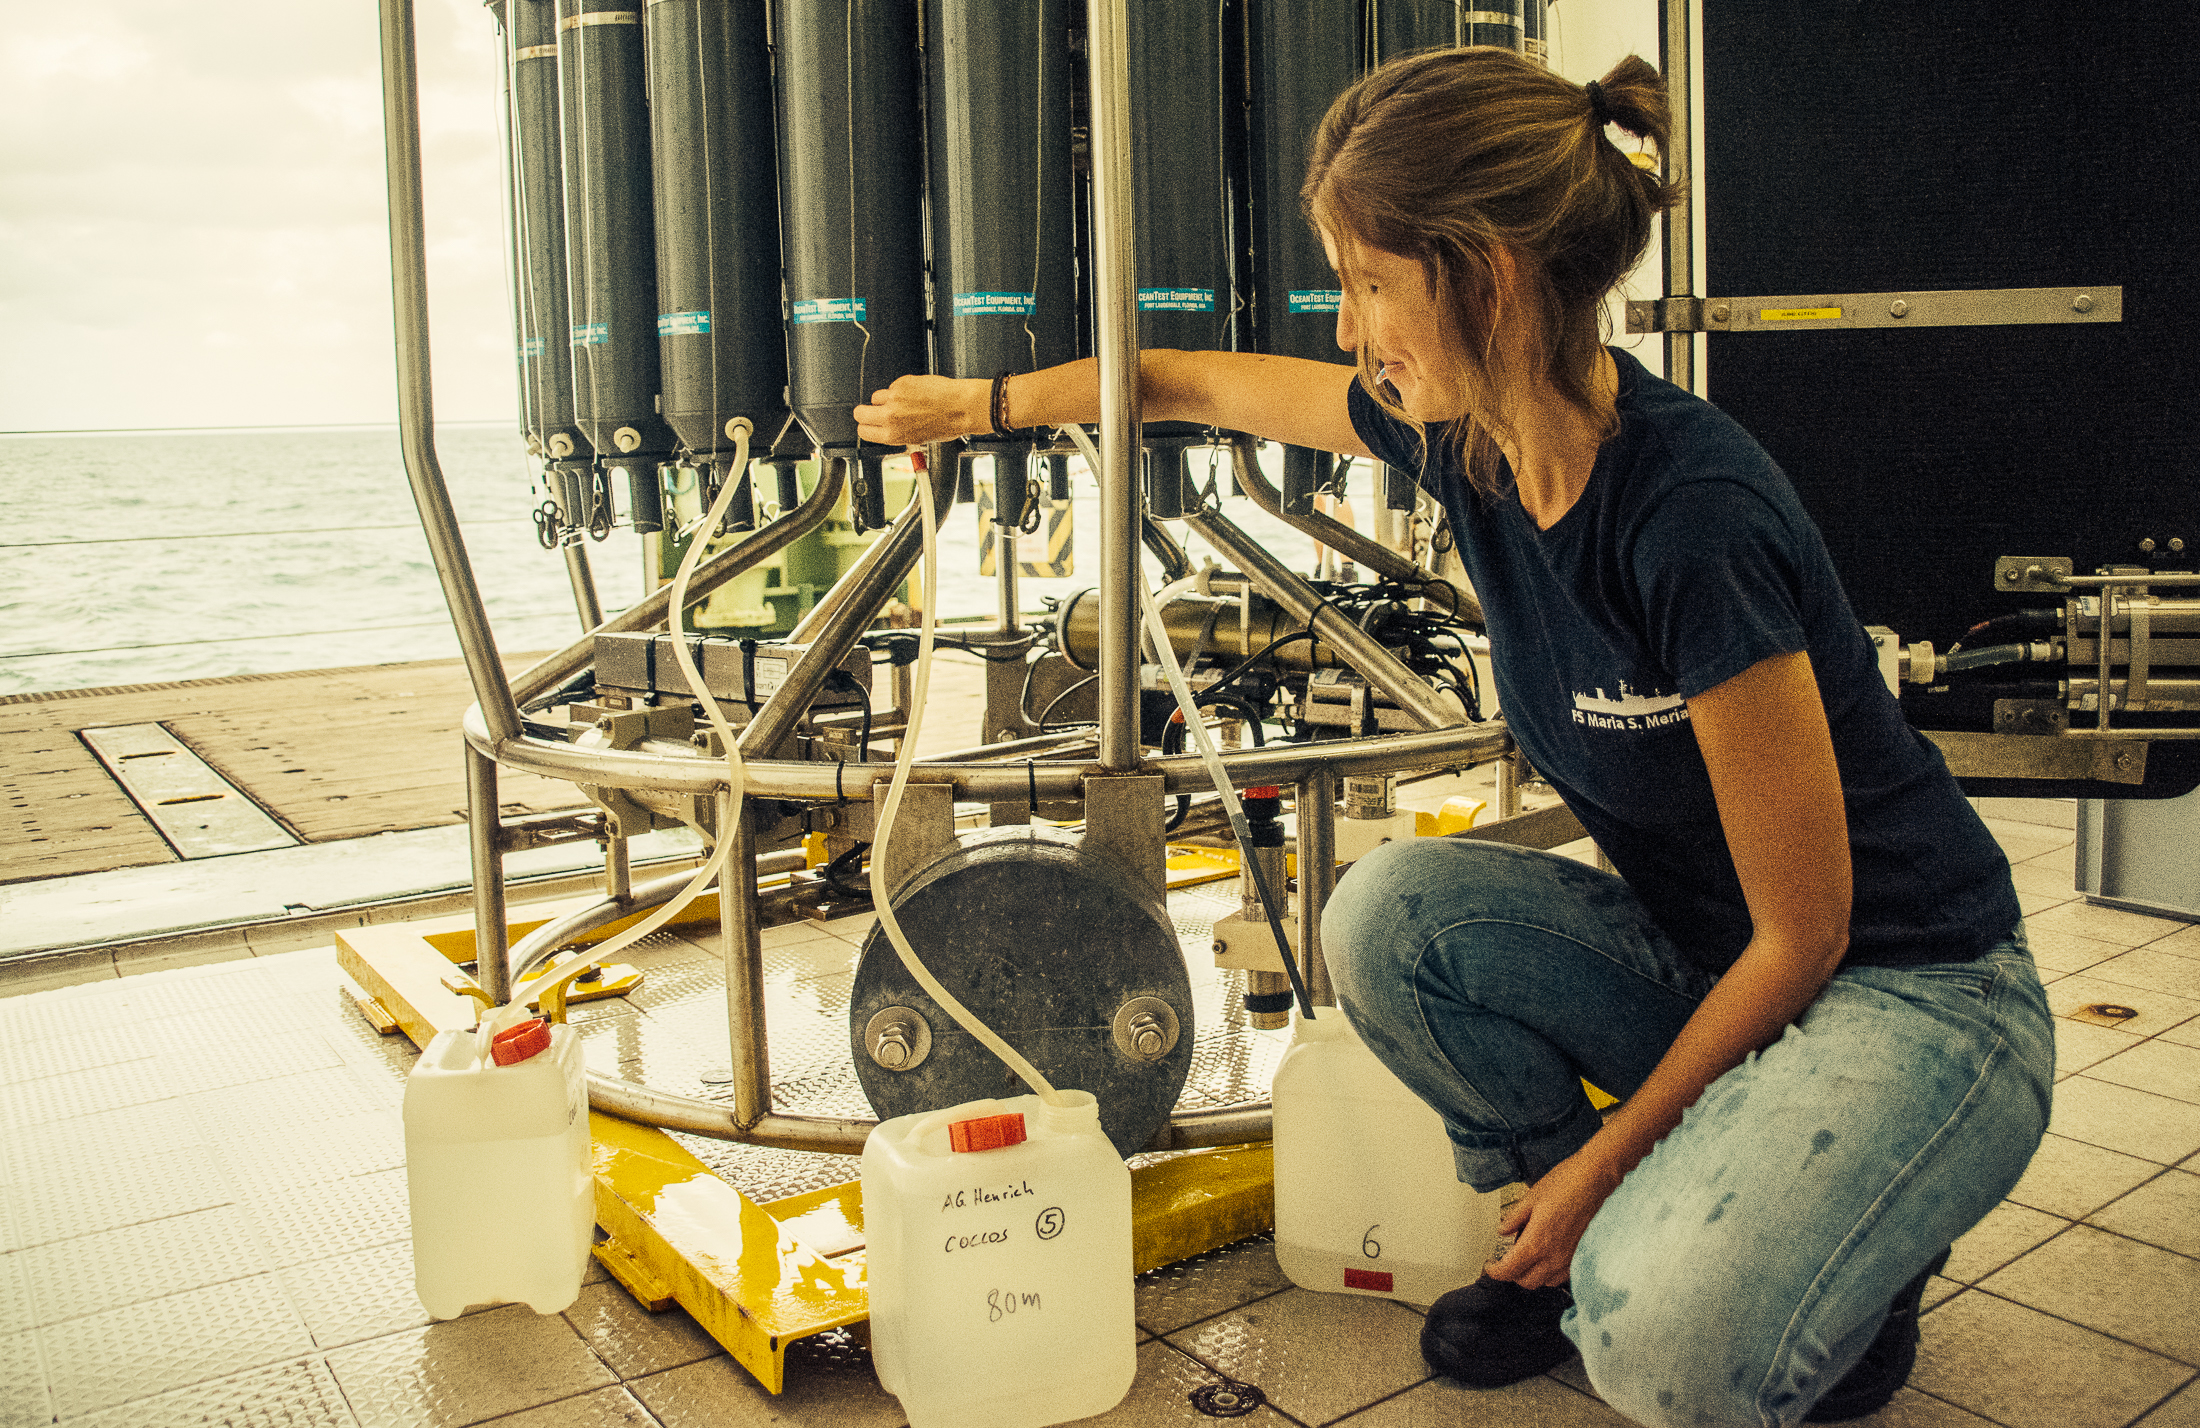 Catarina collecting plankton samples from the NISKIN bottles of the CTD-rosette. Each sample was filtered using a water jet pump for further taxonomic analysis of the coccolithophore communities at the microscope.